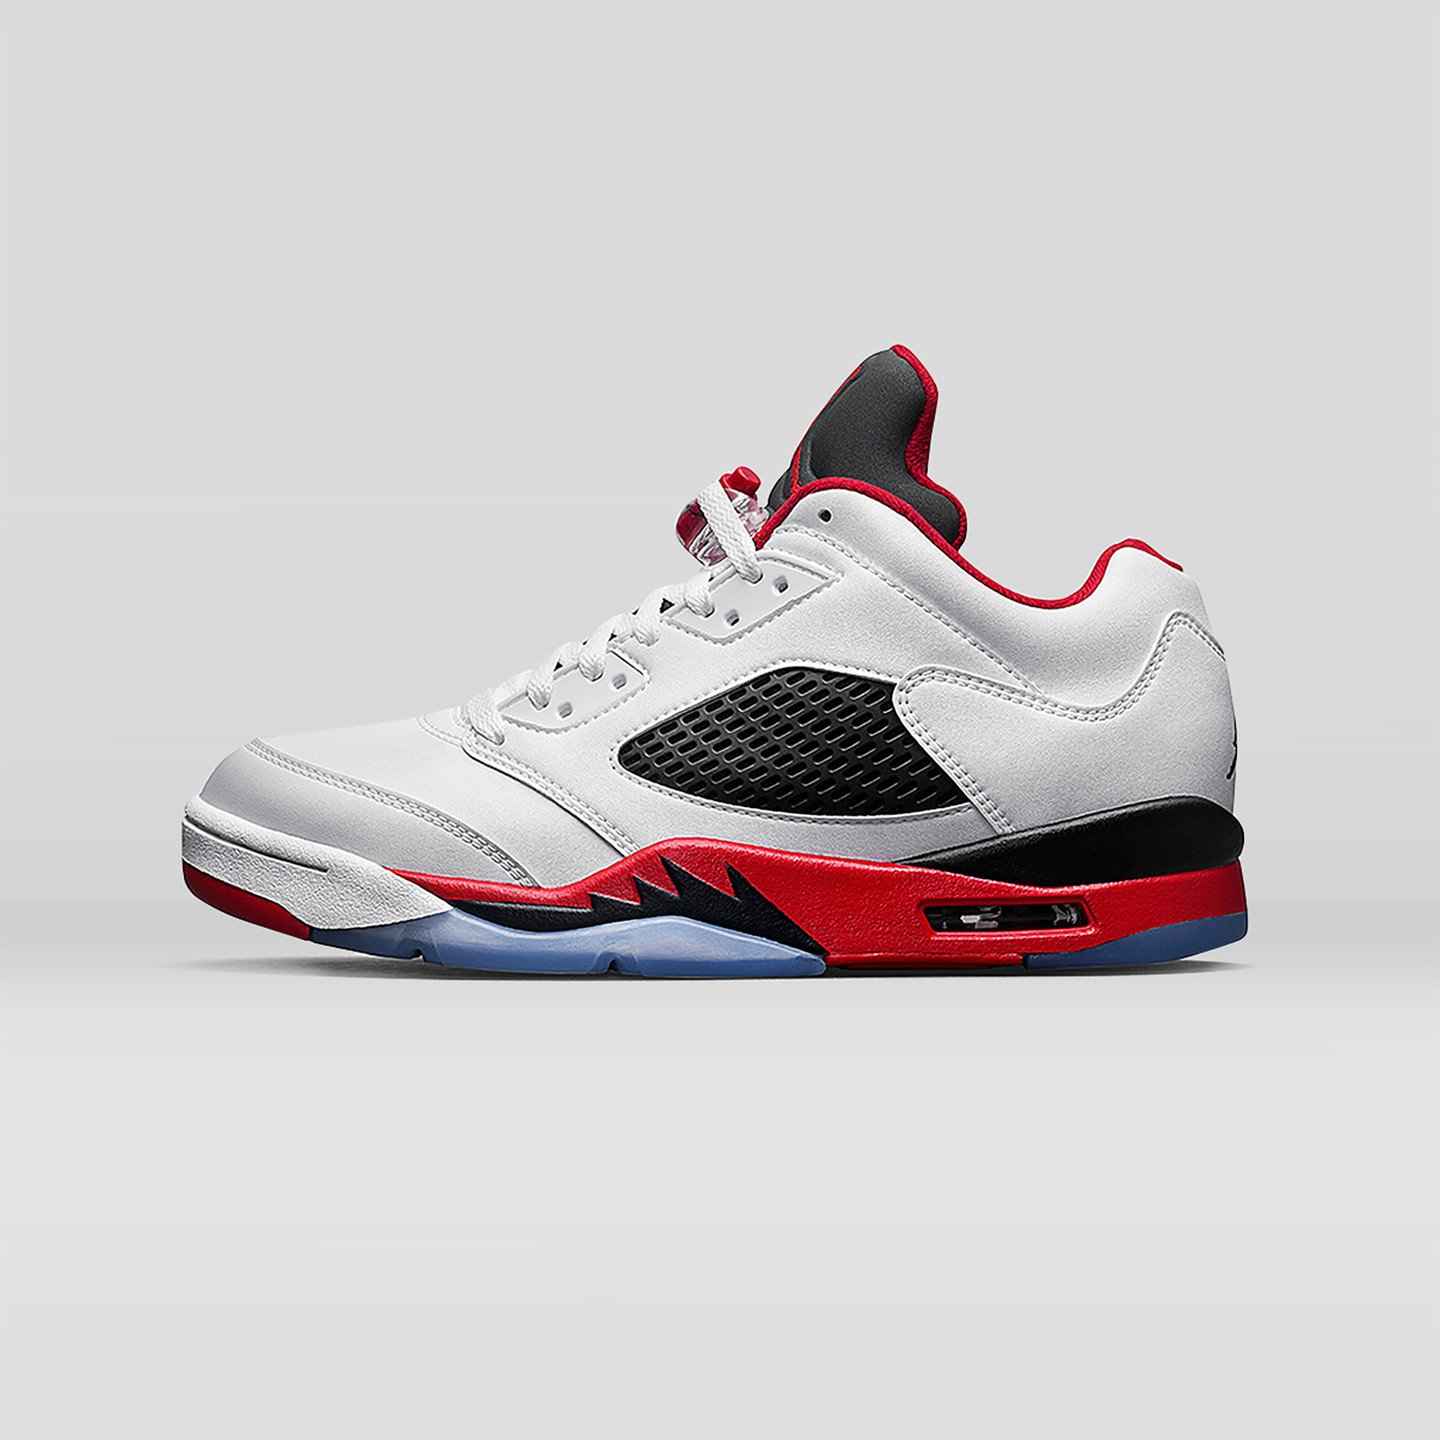 Jordan Air Jordan 5 Low Retro GS 'Fire Red' White / Fire Red / Black 314338-101-38.5